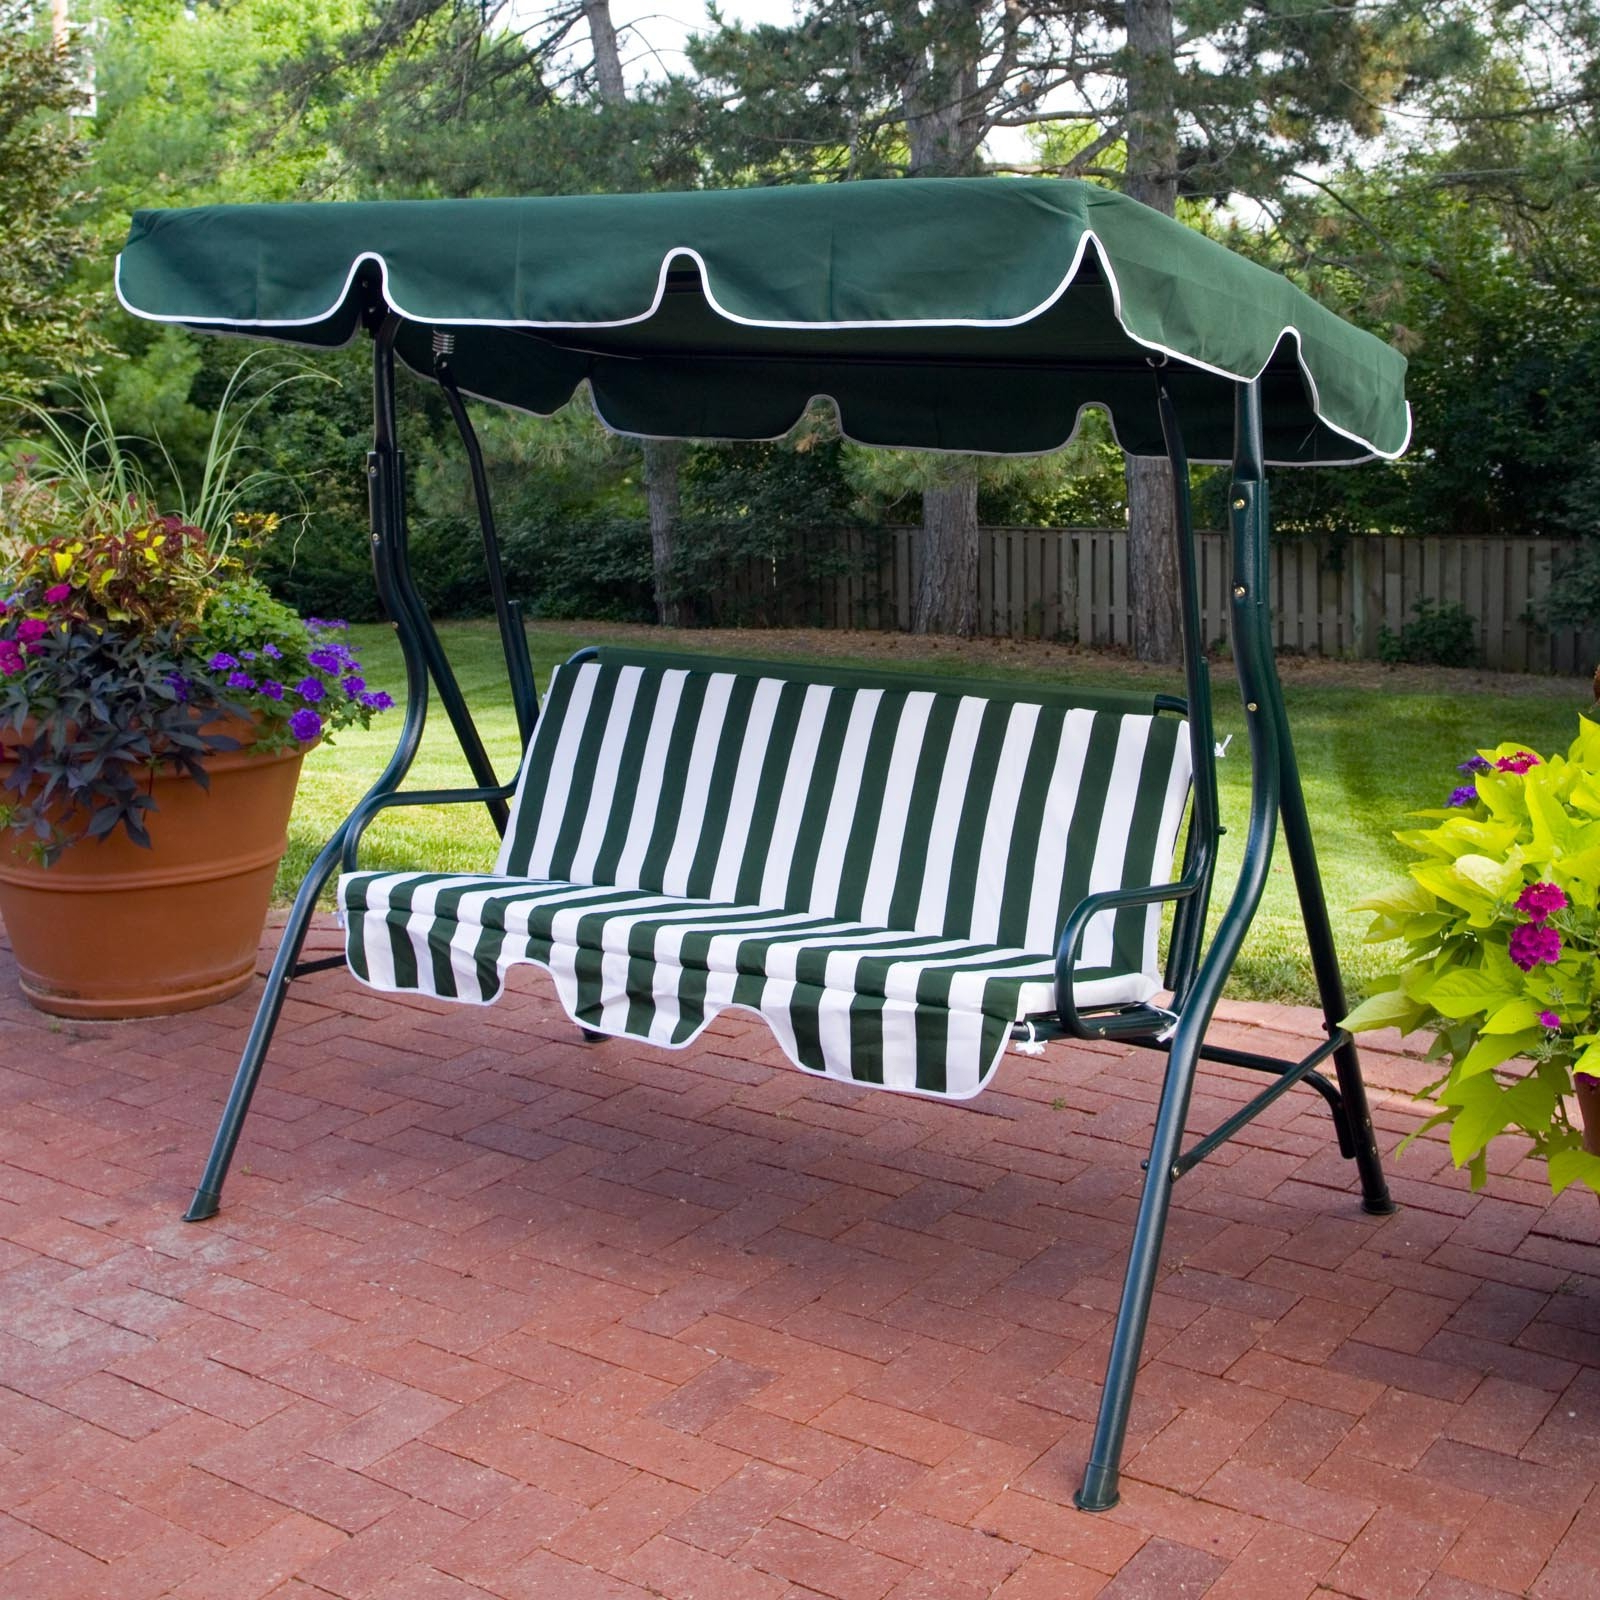 Canopy Porch Swing Sets Within Well Known Canopy Patio Porch Swing With Stand (Gallery 29 of 30)